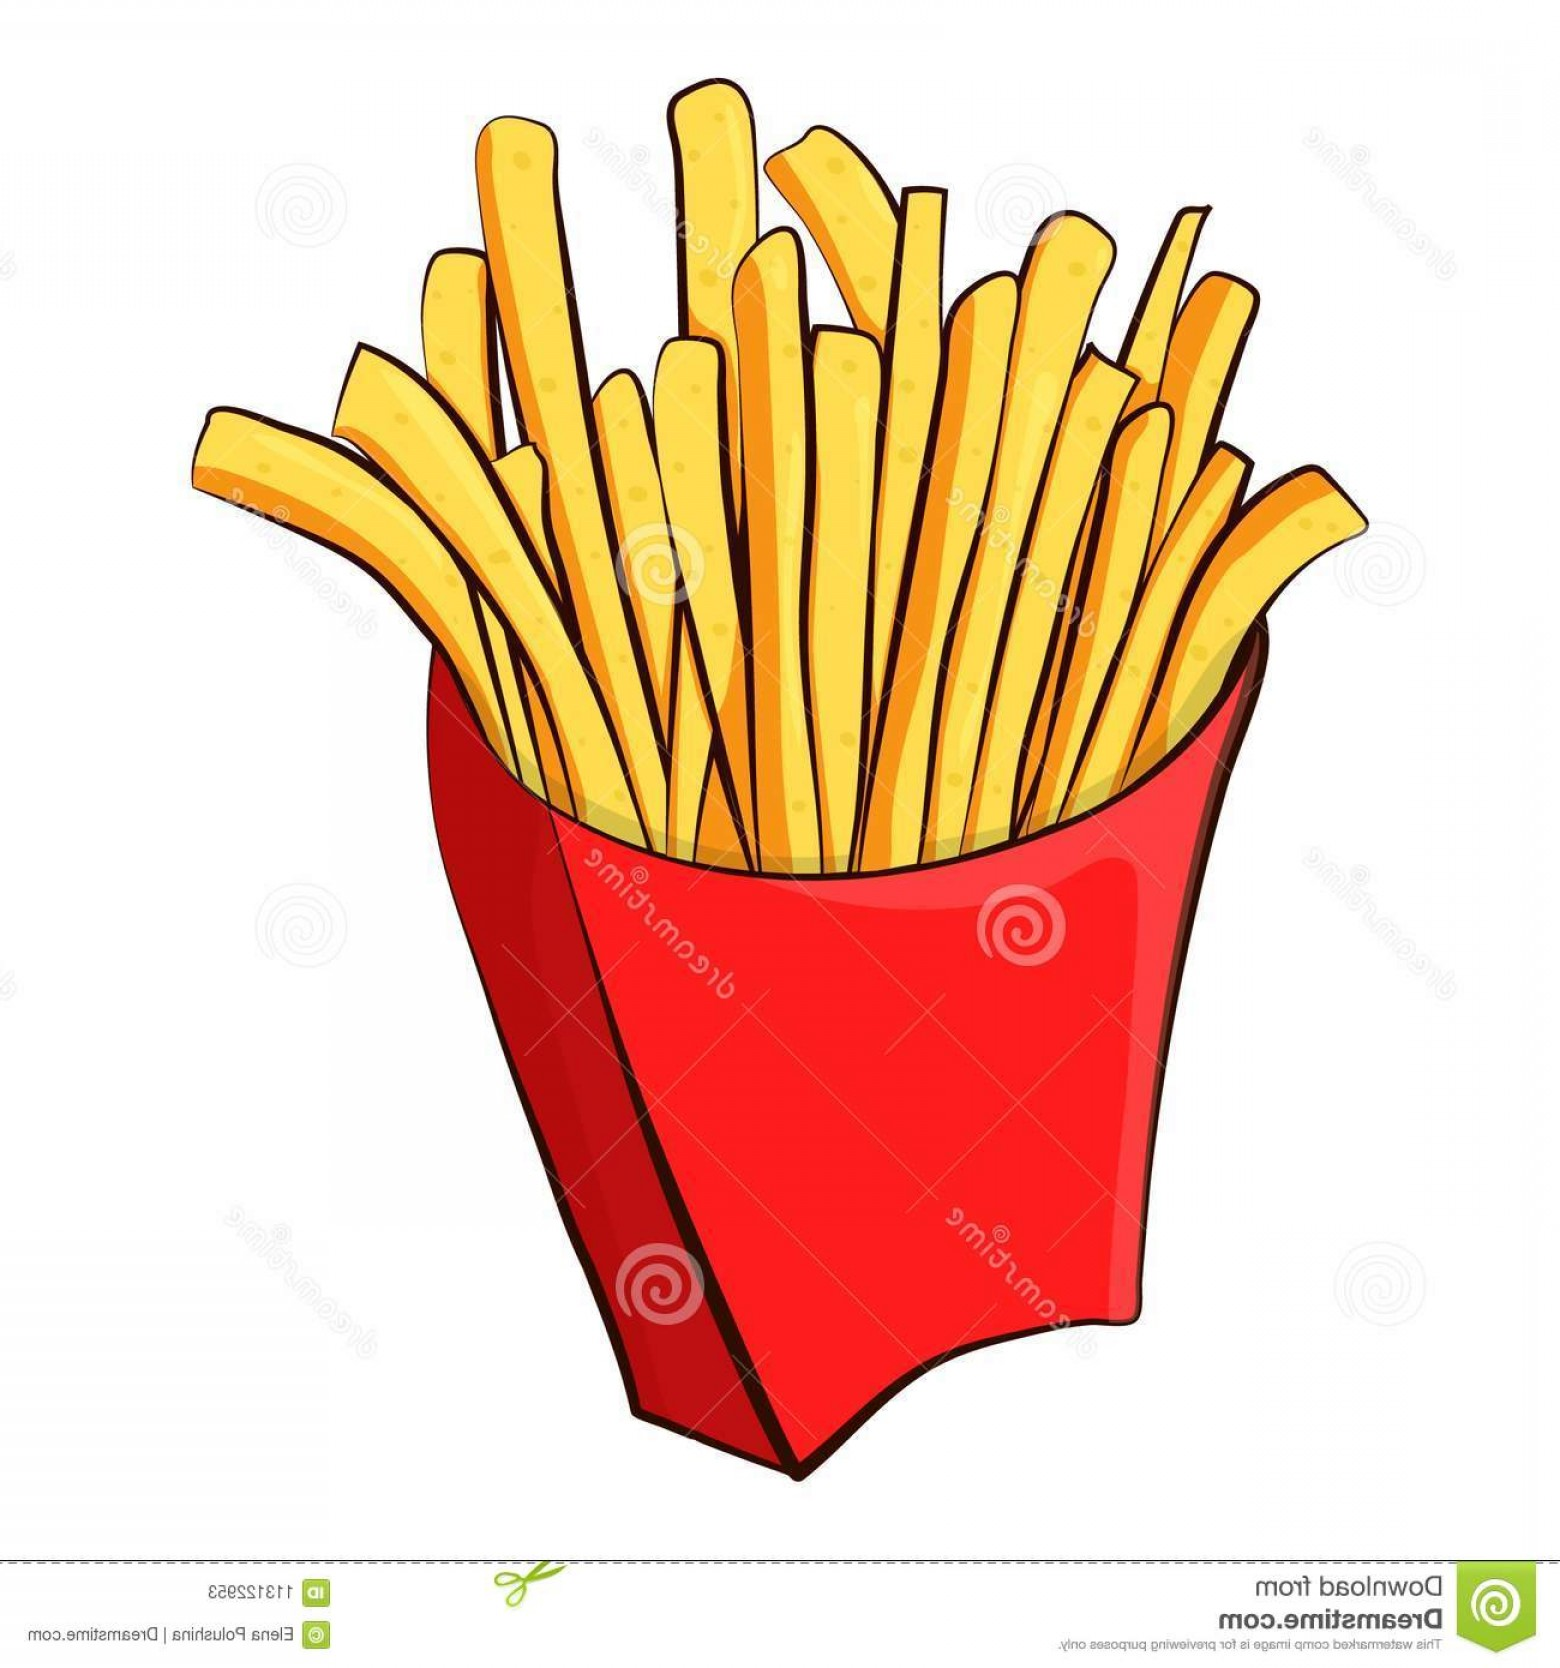 Fries Vector: French Fries Vector Illustration White Background Image